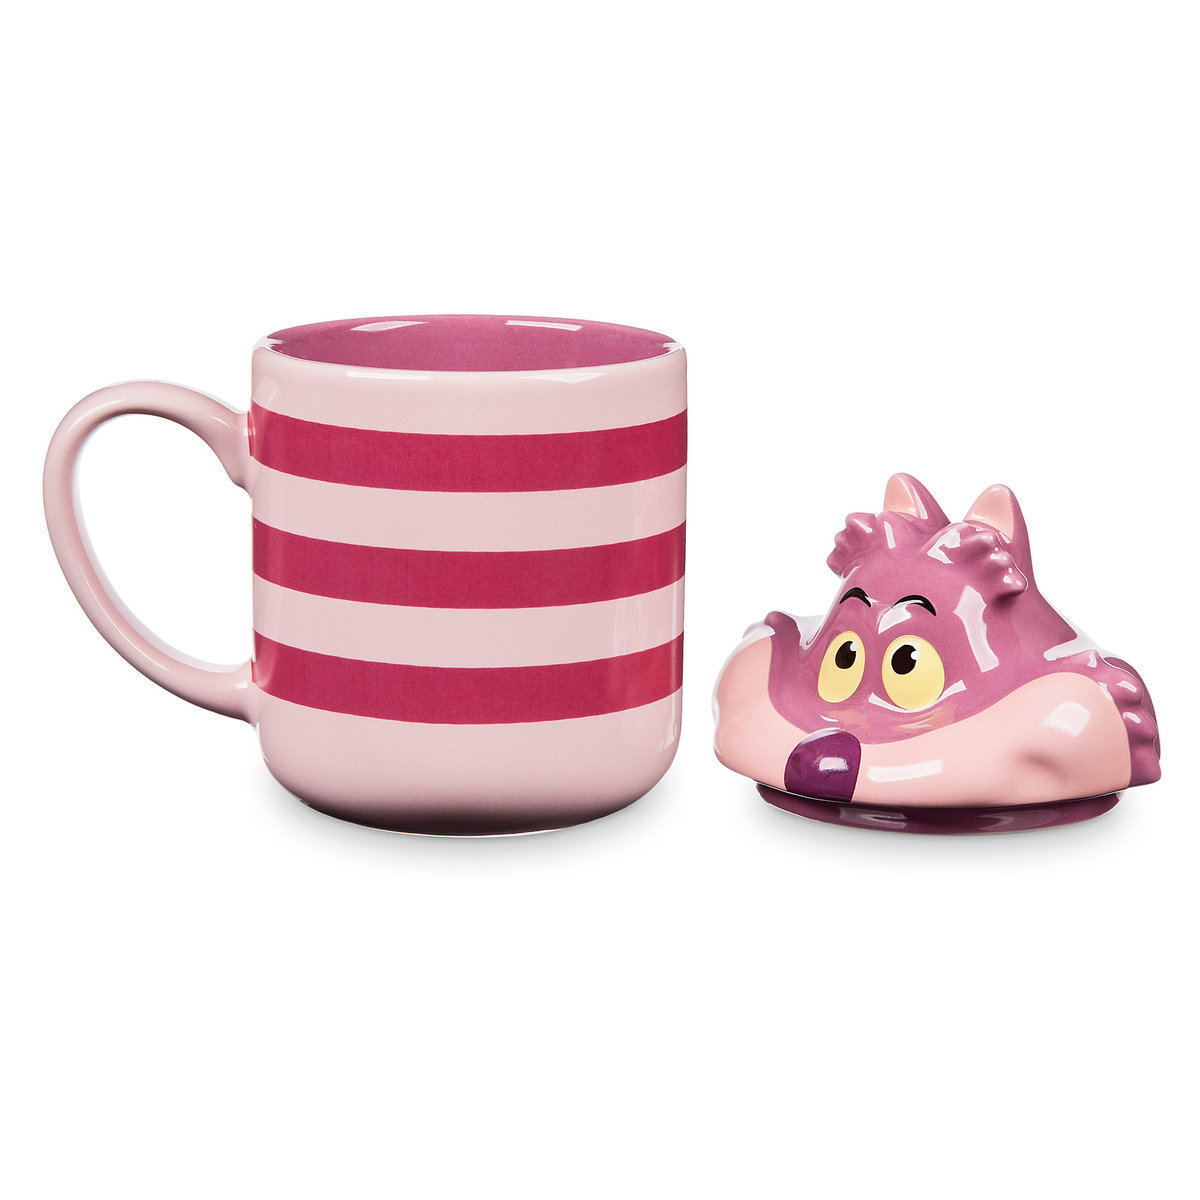 Cheshire Cat Peek-a-Boo Lid Mug